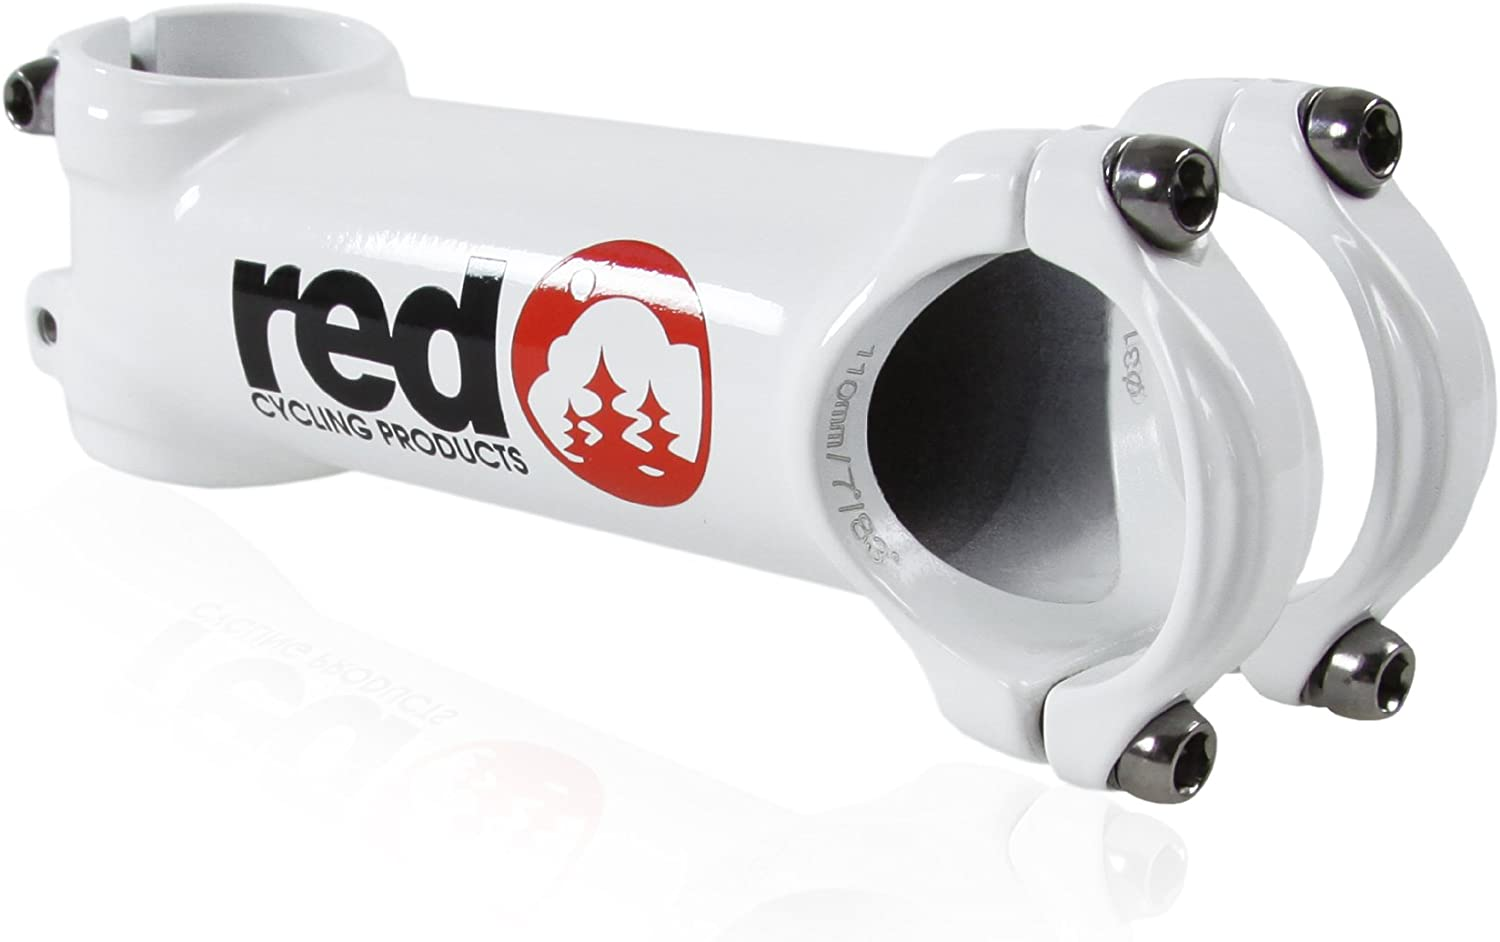 Red Cycling Products Light Pro Ahead Vorbau white L/änge 120 mm 2015 Rennrad Vorbau